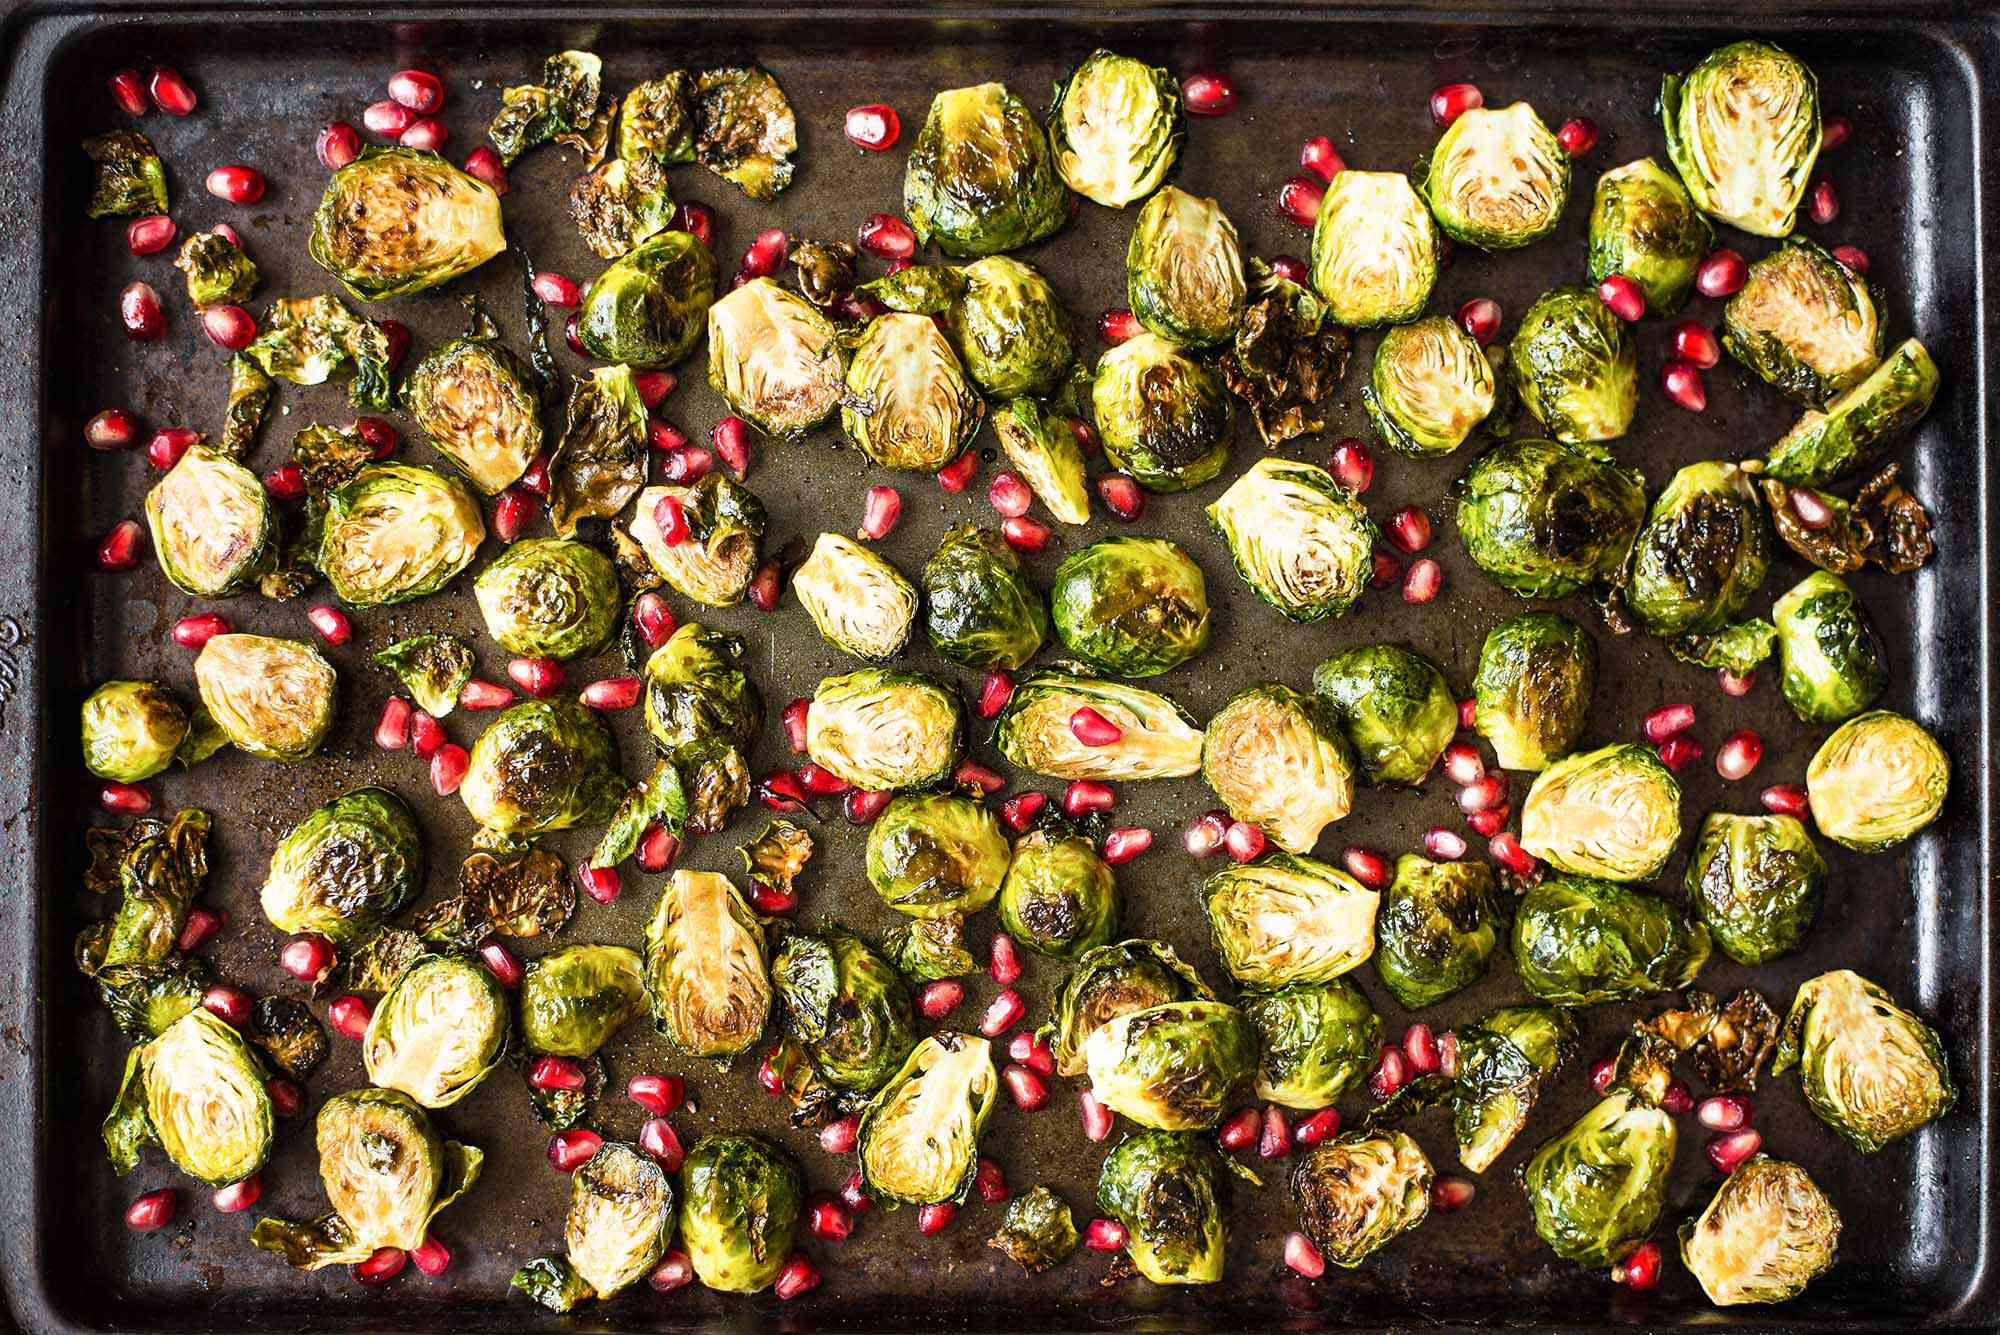 Roasted Brussels Sprouts with Pomegranate-Balsamic Glaze